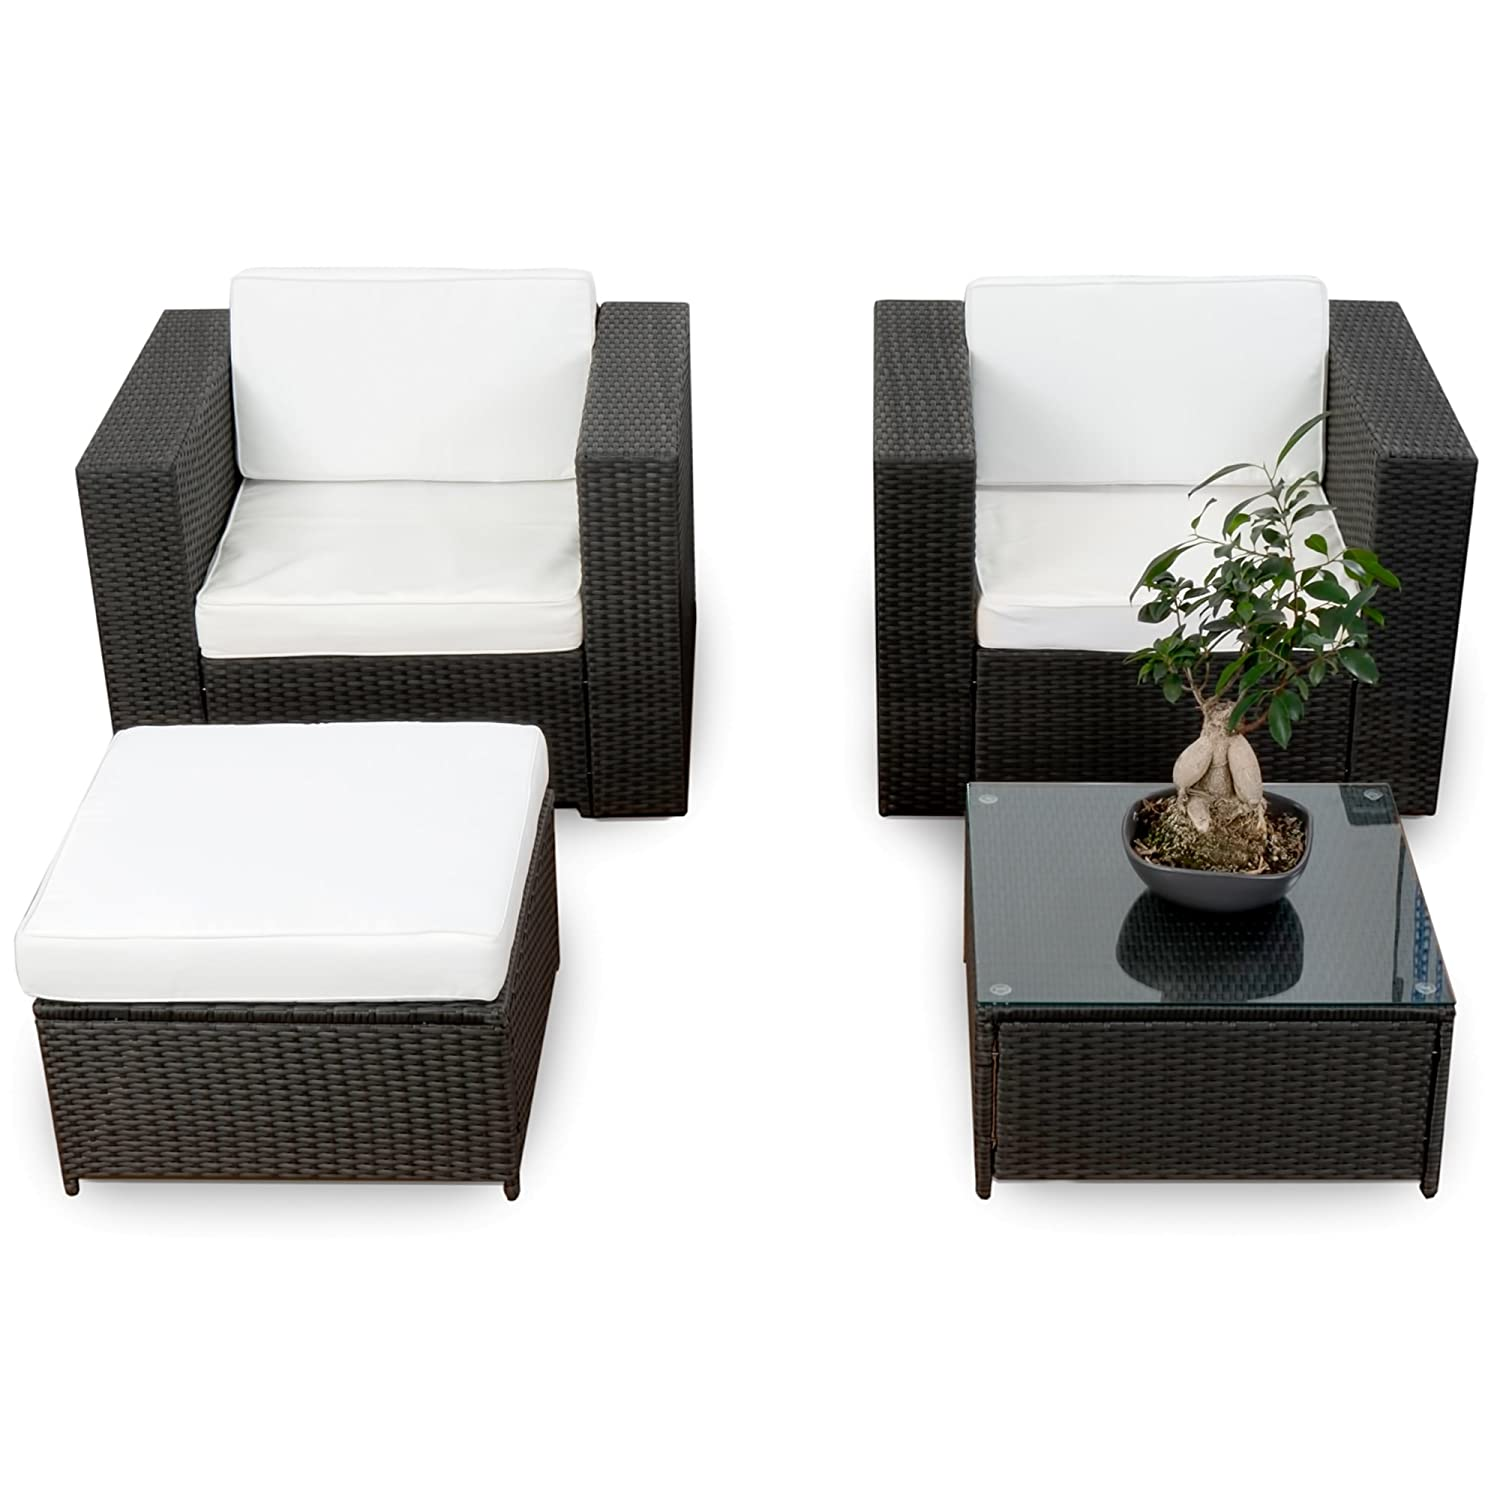 erweiterbares 10tlg balkon garten lounge set polyrattan. Black Bedroom Furniture Sets. Home Design Ideas